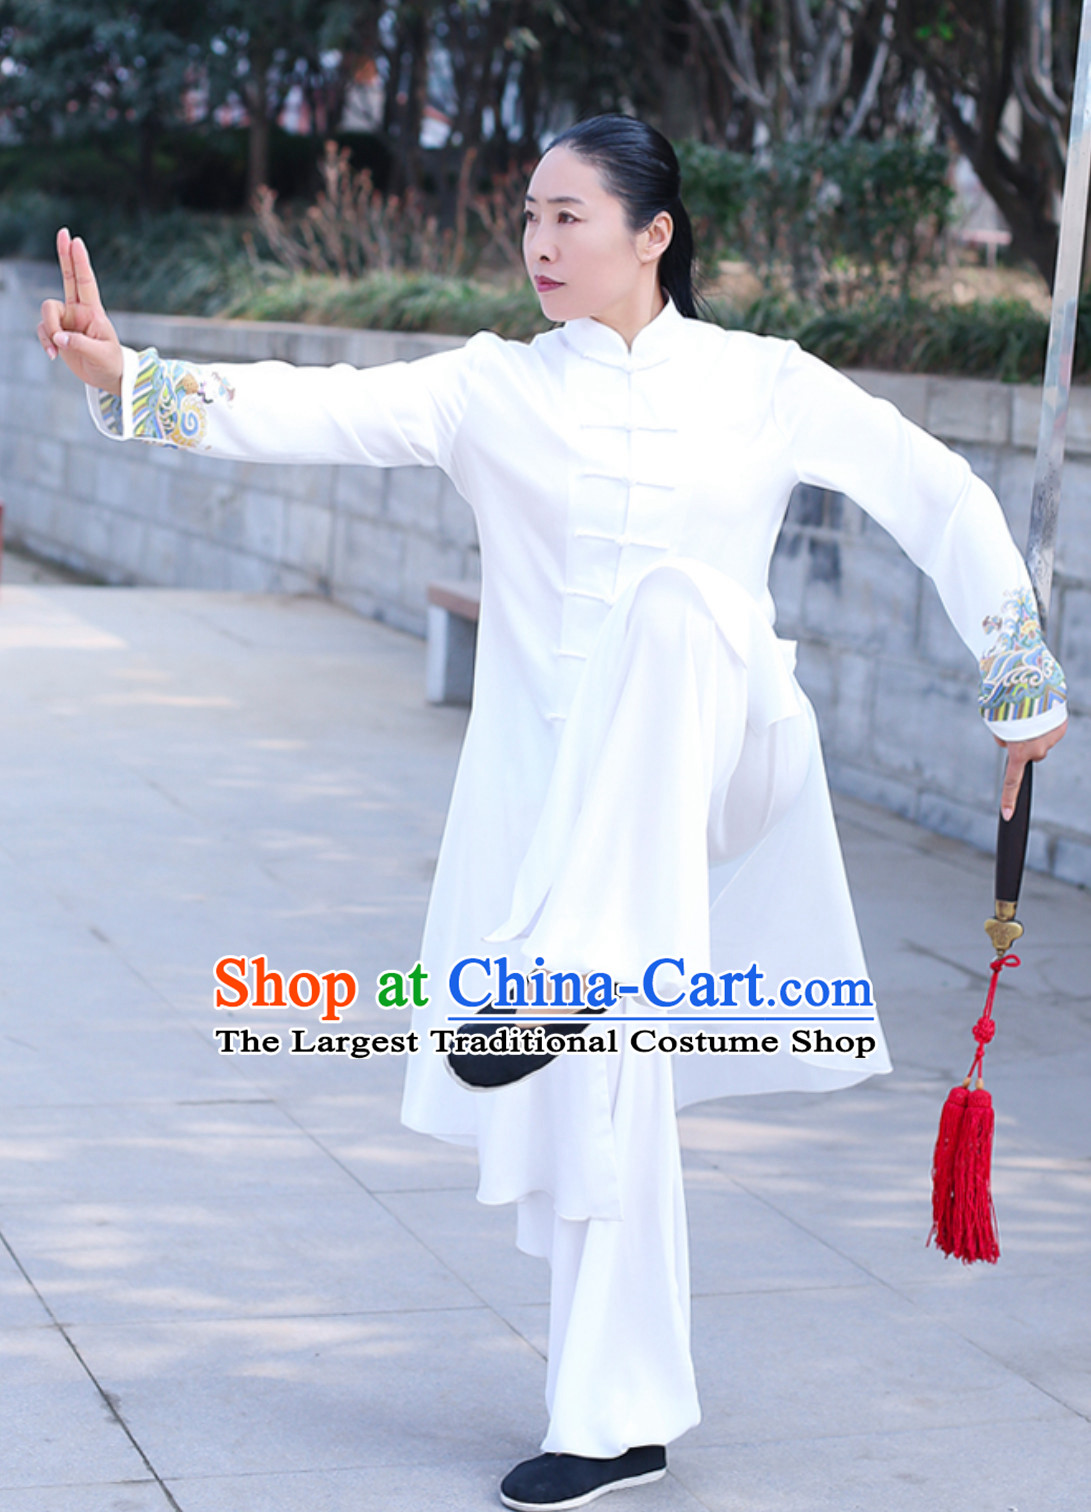 Top Chinese Traditional Competition Championship Tai Chi Taiji Kung Fu Wing Chun Kungfu Tai Ji Sword Gong Fu Master Suits Clothes Complete Set